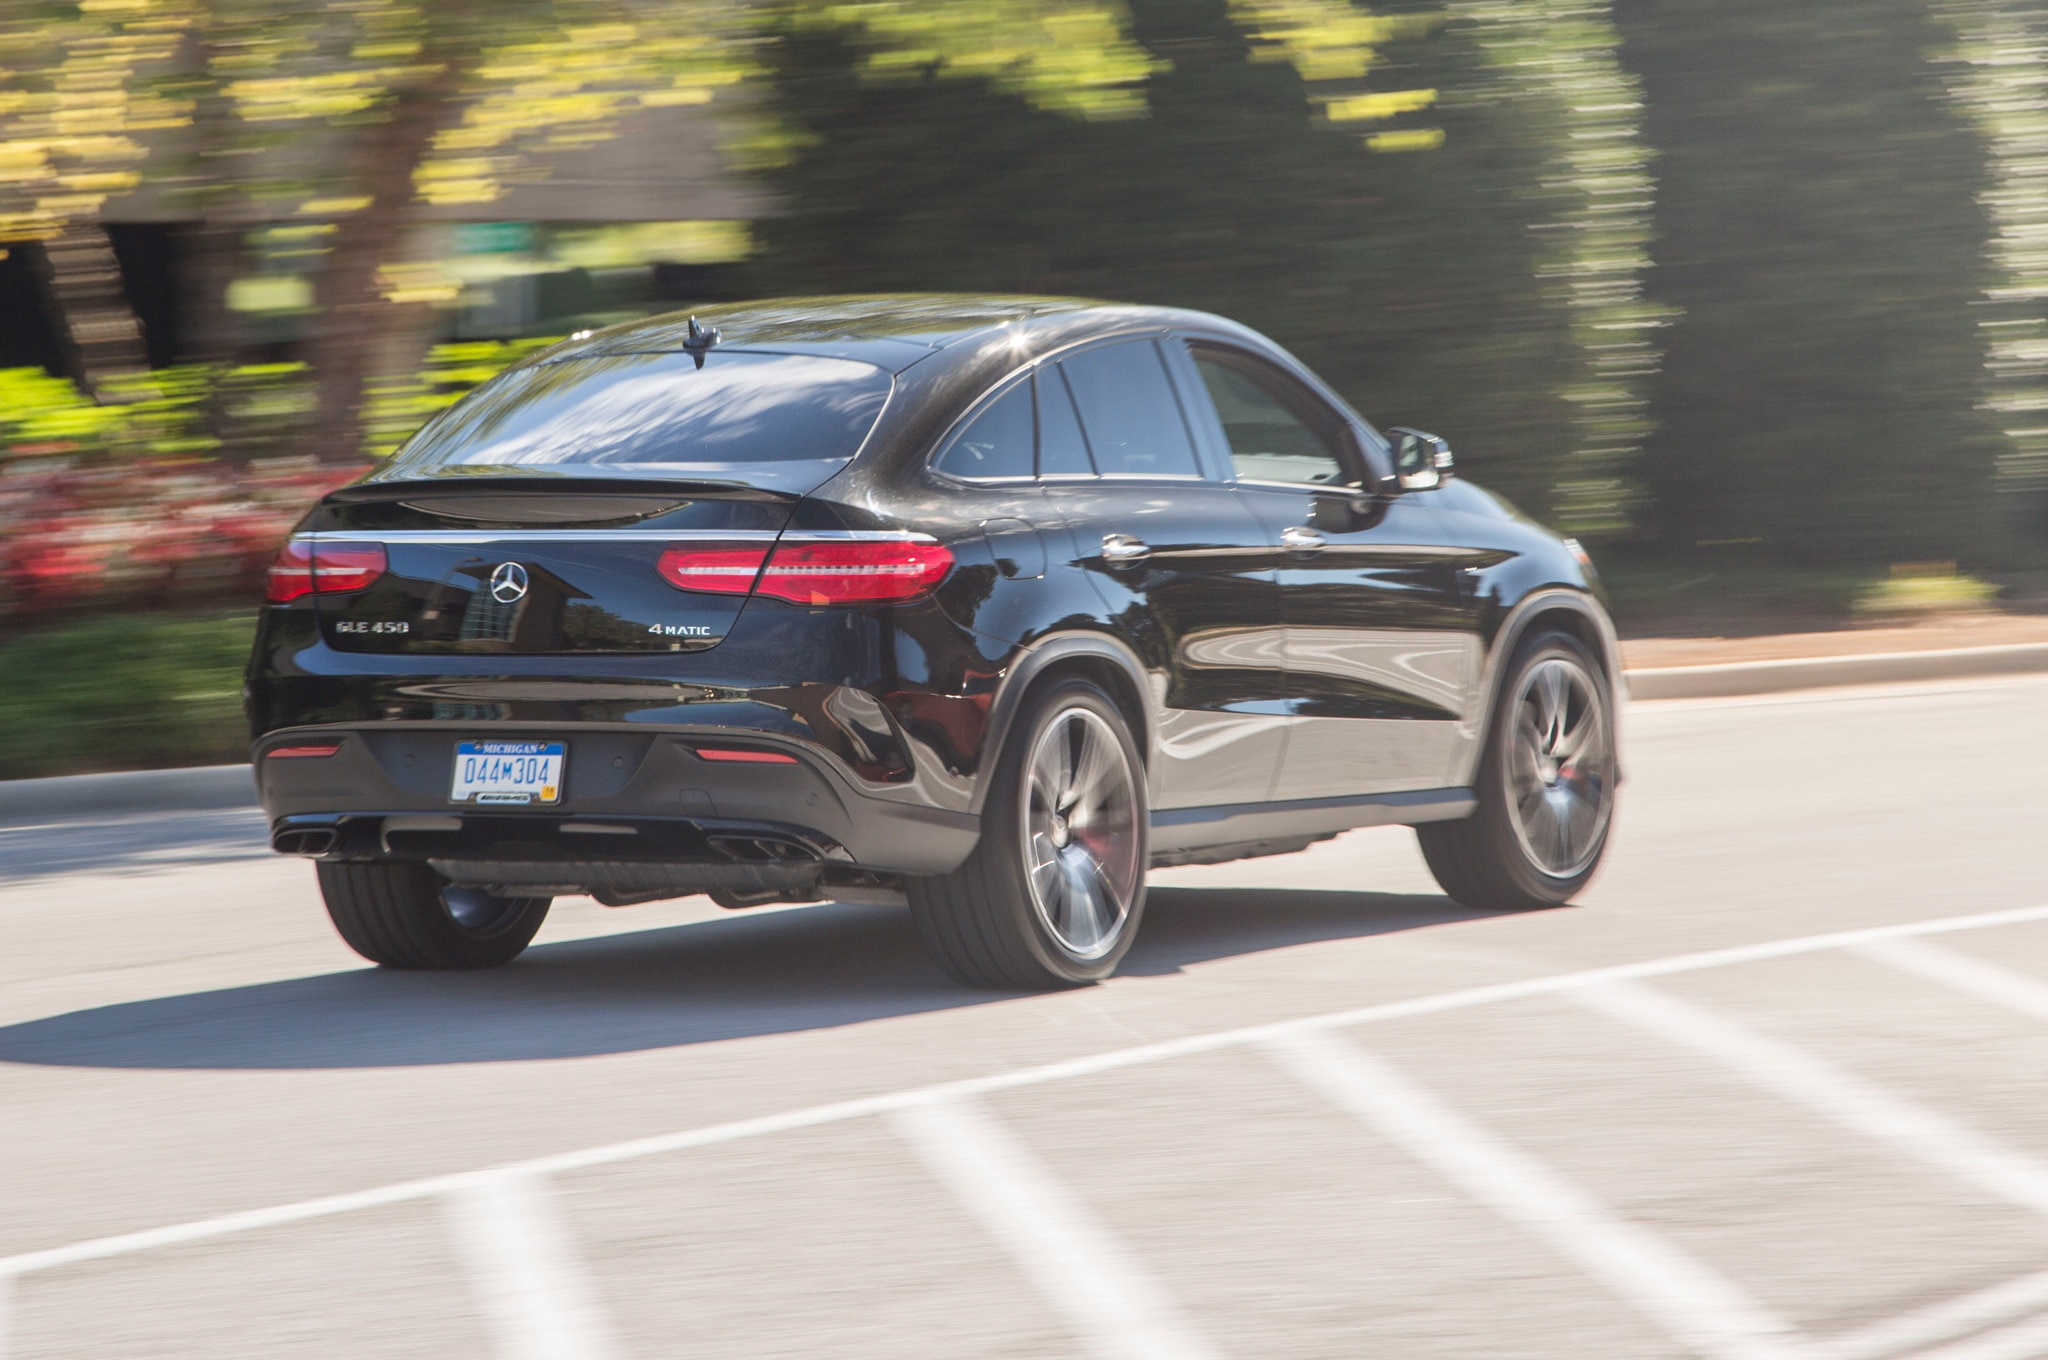 2016 mercedes benz gle450 amg 4matic coupe review for 2016 mercedes benz ml350